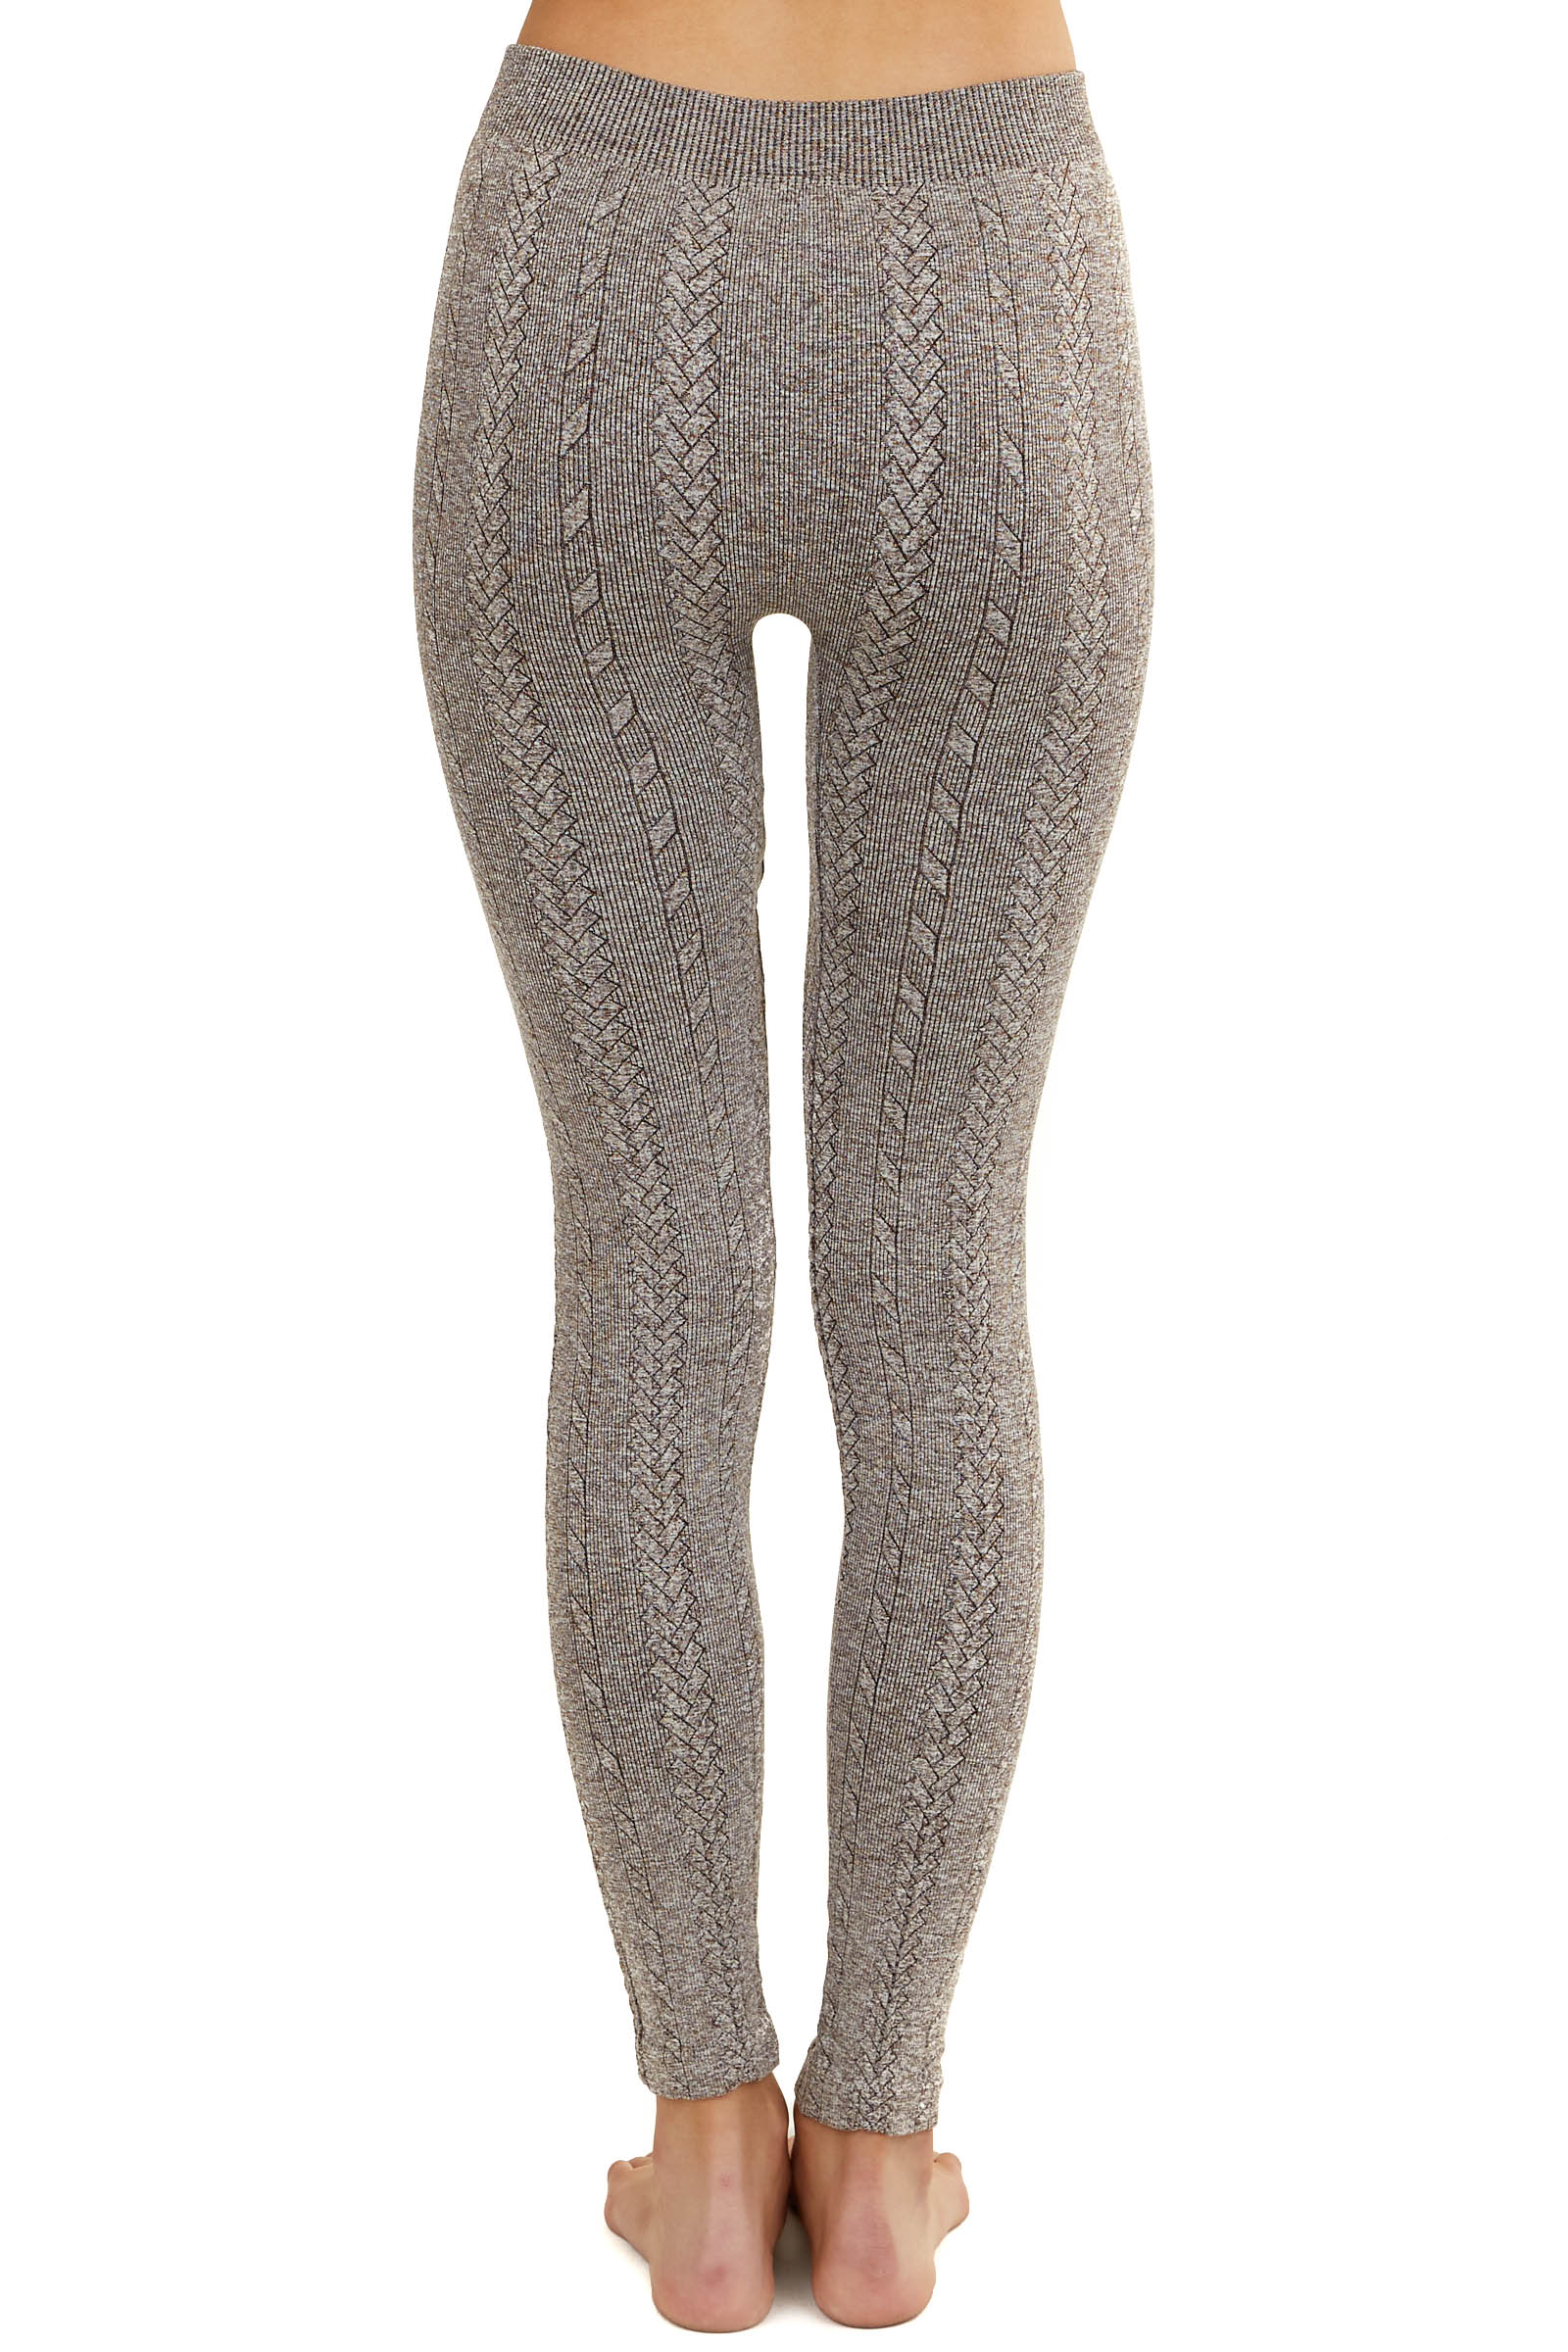 Heathered Brown Braided Knit Comfy Leggings